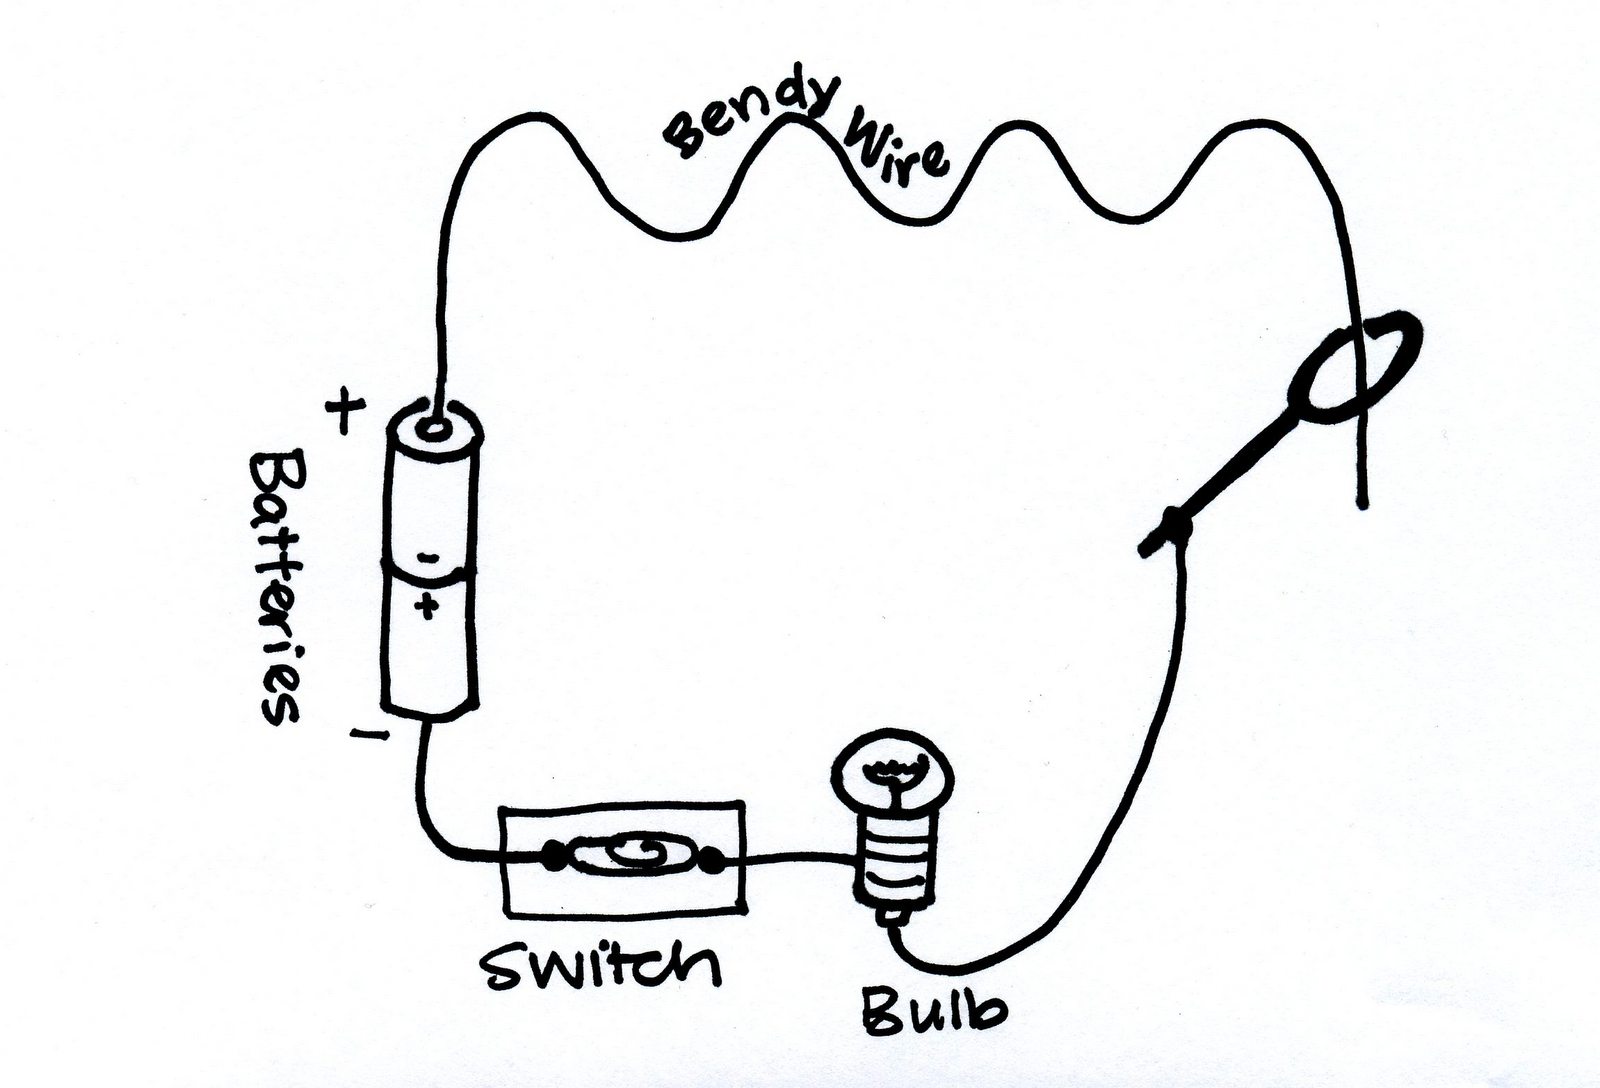 light bulb symbol circuit diagram